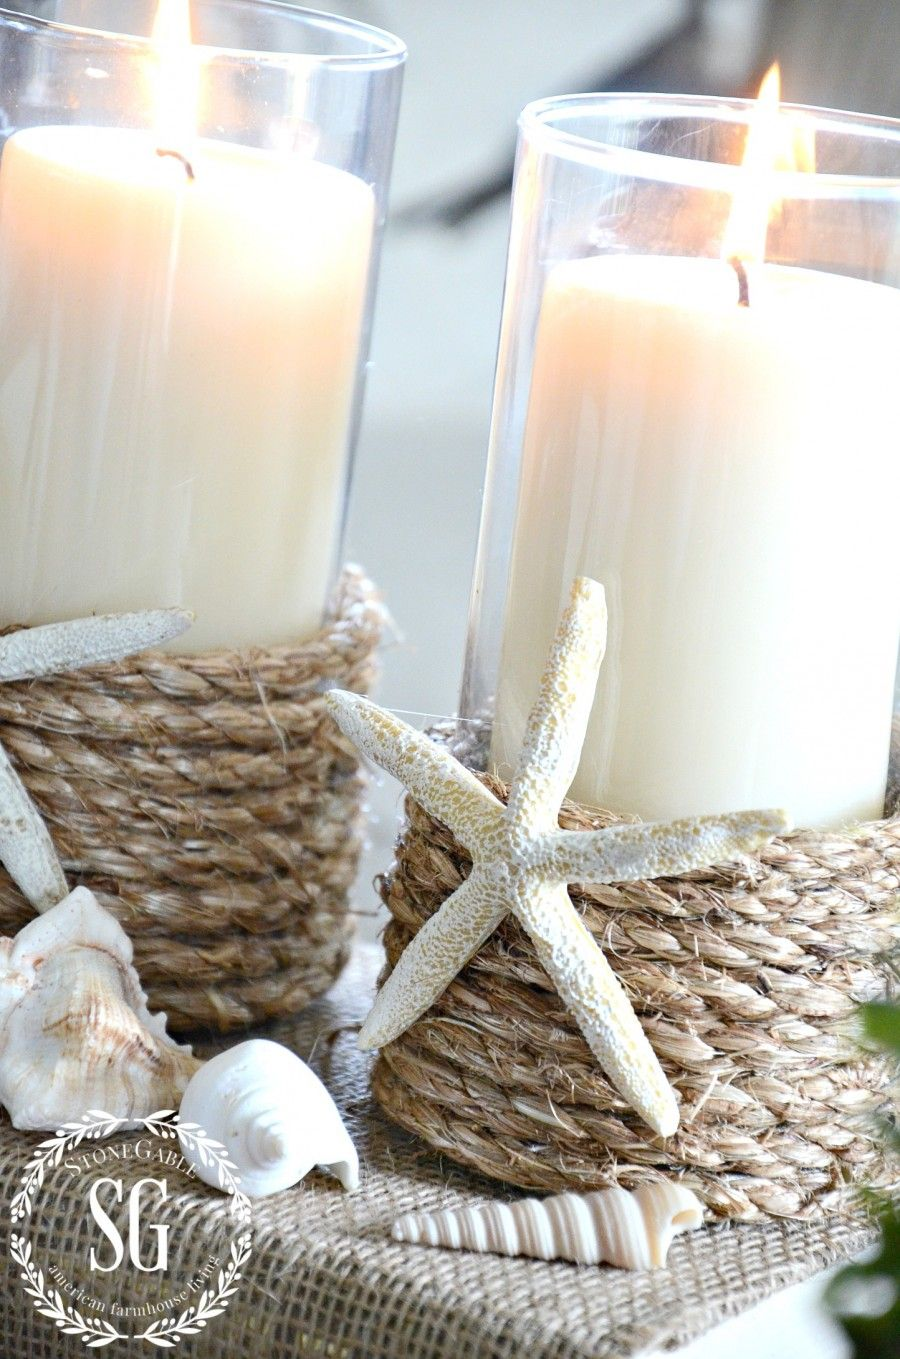 POTTERY BARN INSPIRED ROPE WRAPPED CANDLE HOLDER DIY-organic-beach  chic-attractive-